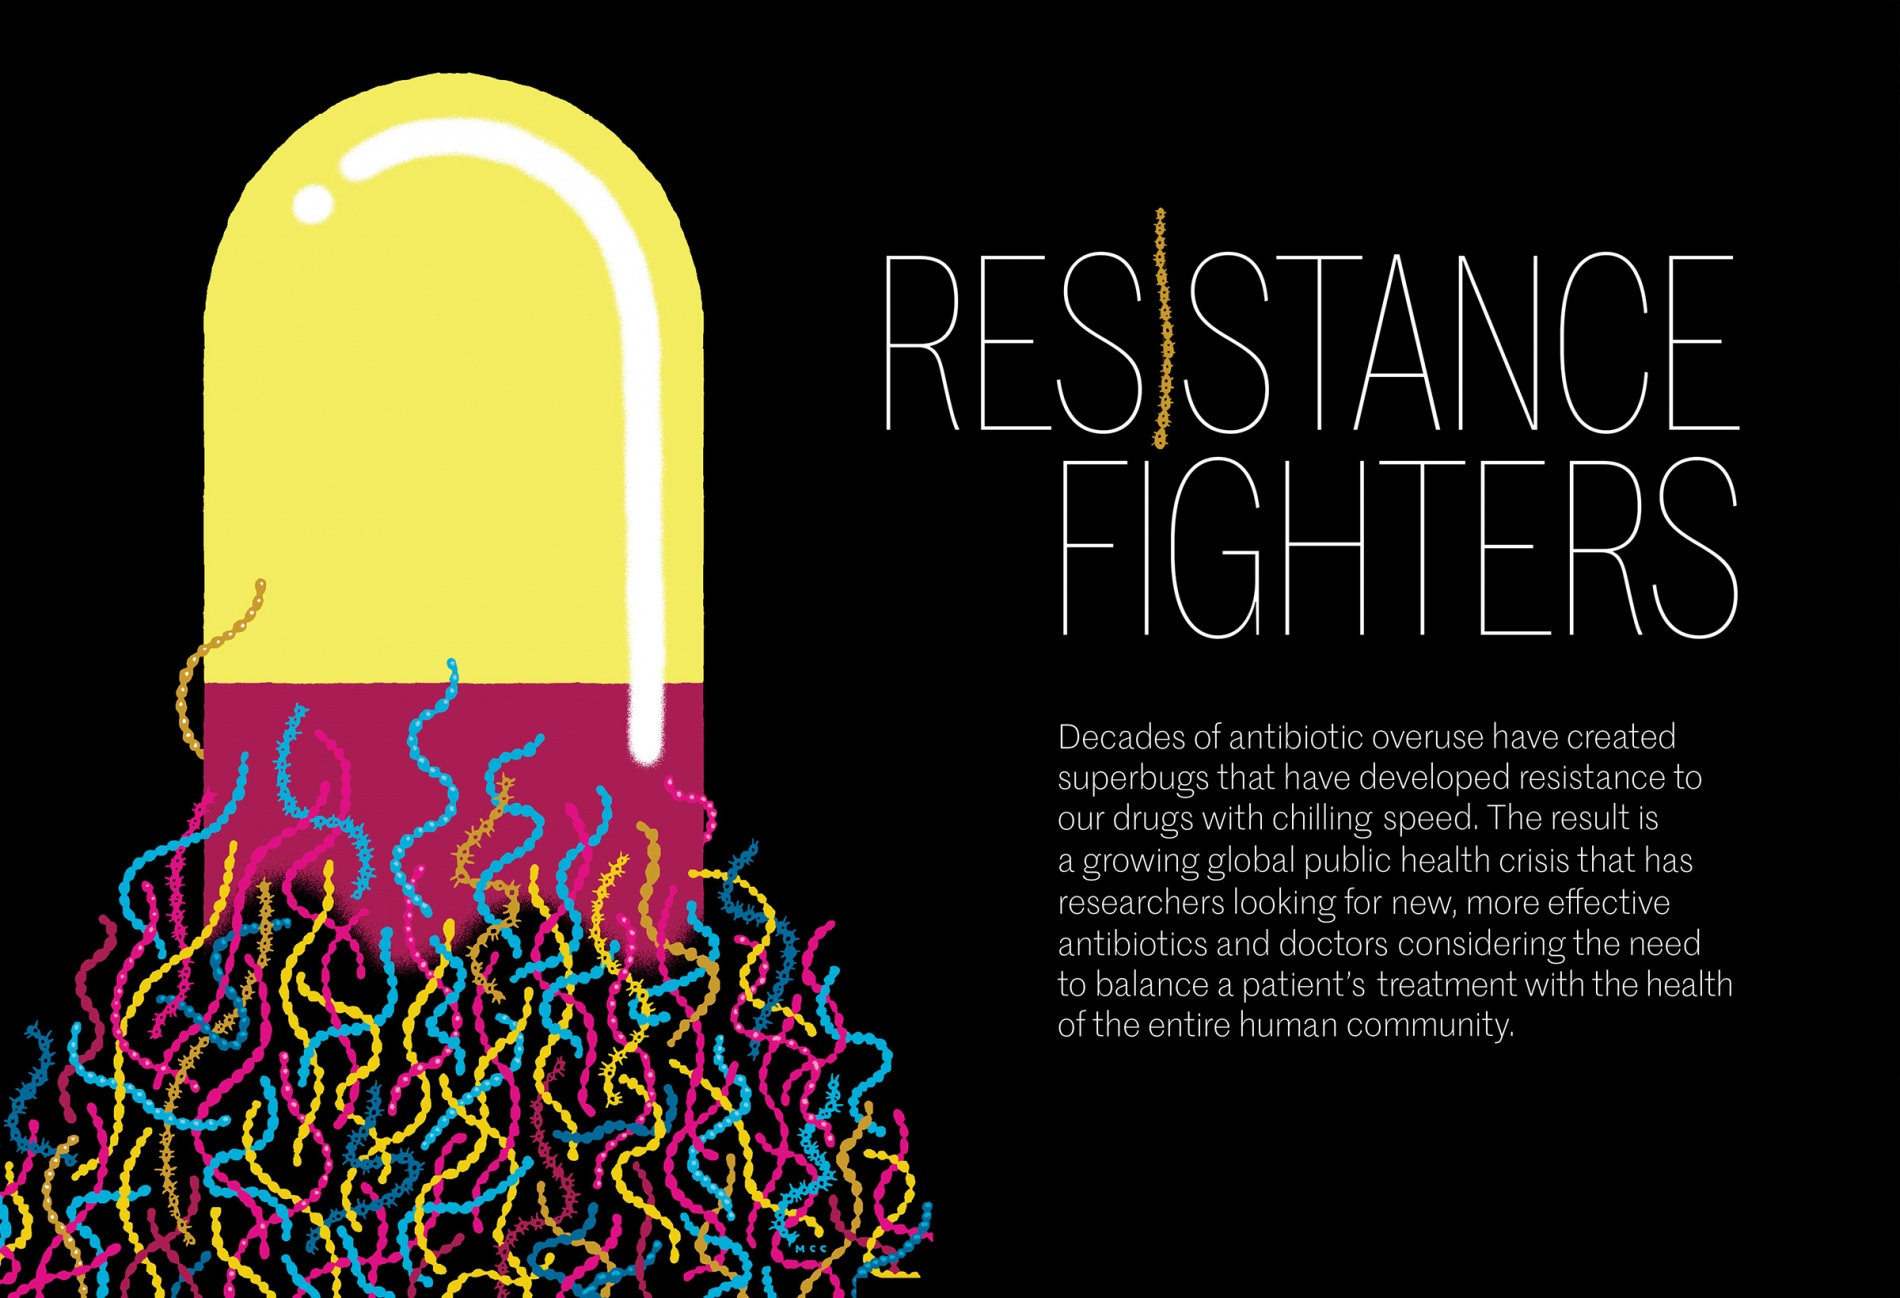 An illustration of a pill with bacteria swarming around its base. Title: Resistance fighters. Subtitle: Decades of antibiotic overuse have created superbugs that have developed resistance to our drugs with chilling speed. The result is a growing public health crisis that has researchers looking for new, more effective antibiotics and doctors considering the need to balance a patient's treatment with the health of the entire human community.